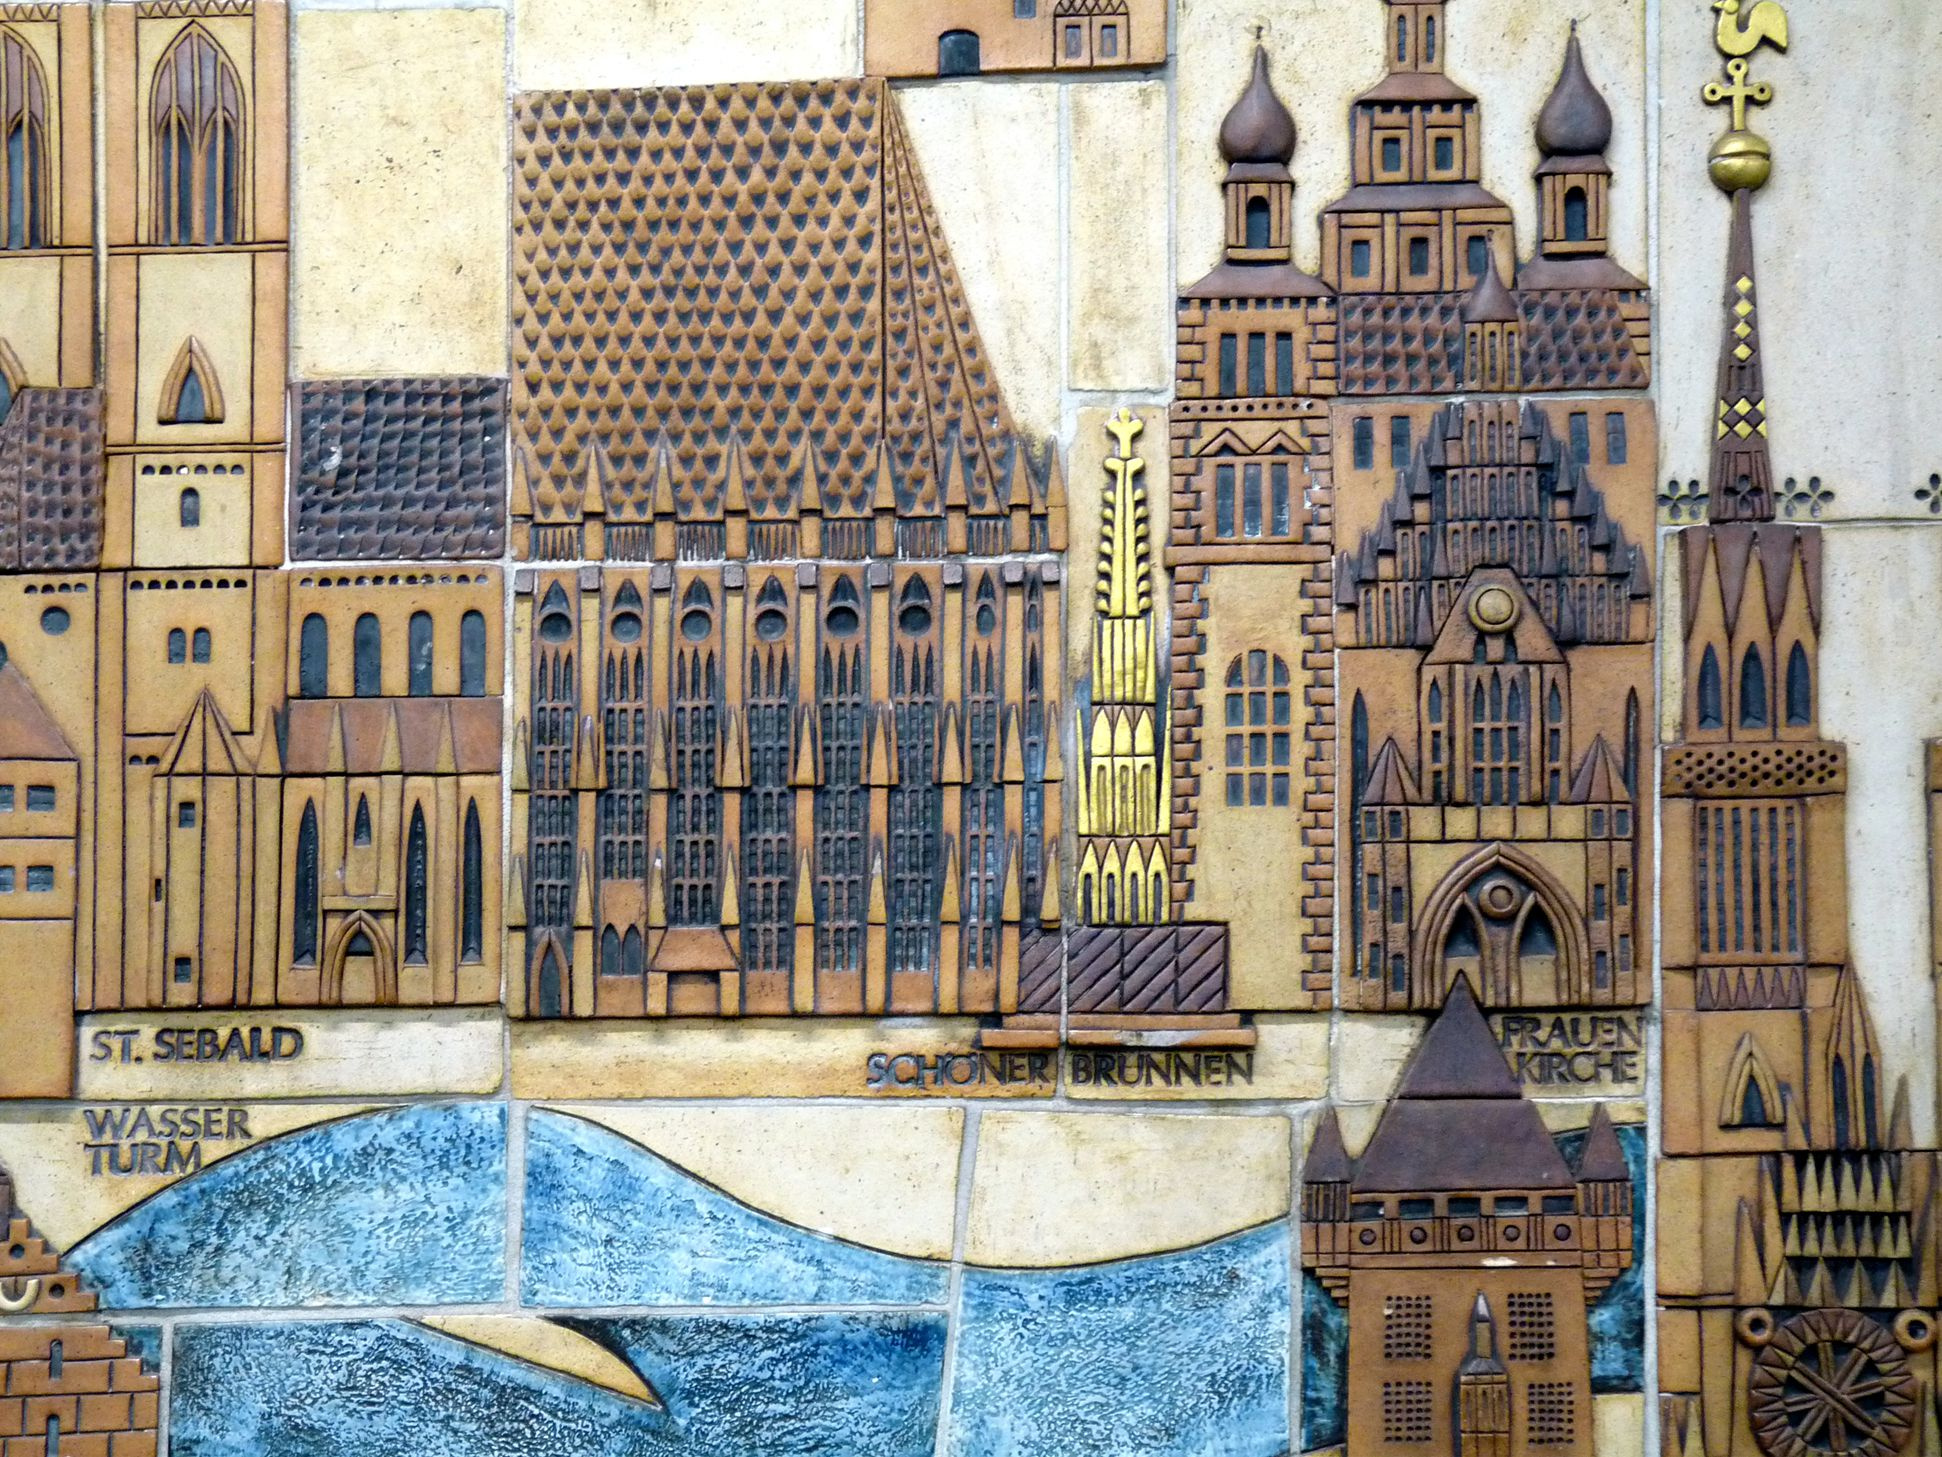 Ceramic relief of the Nuremberg Old City Detail: Heart of the Old City